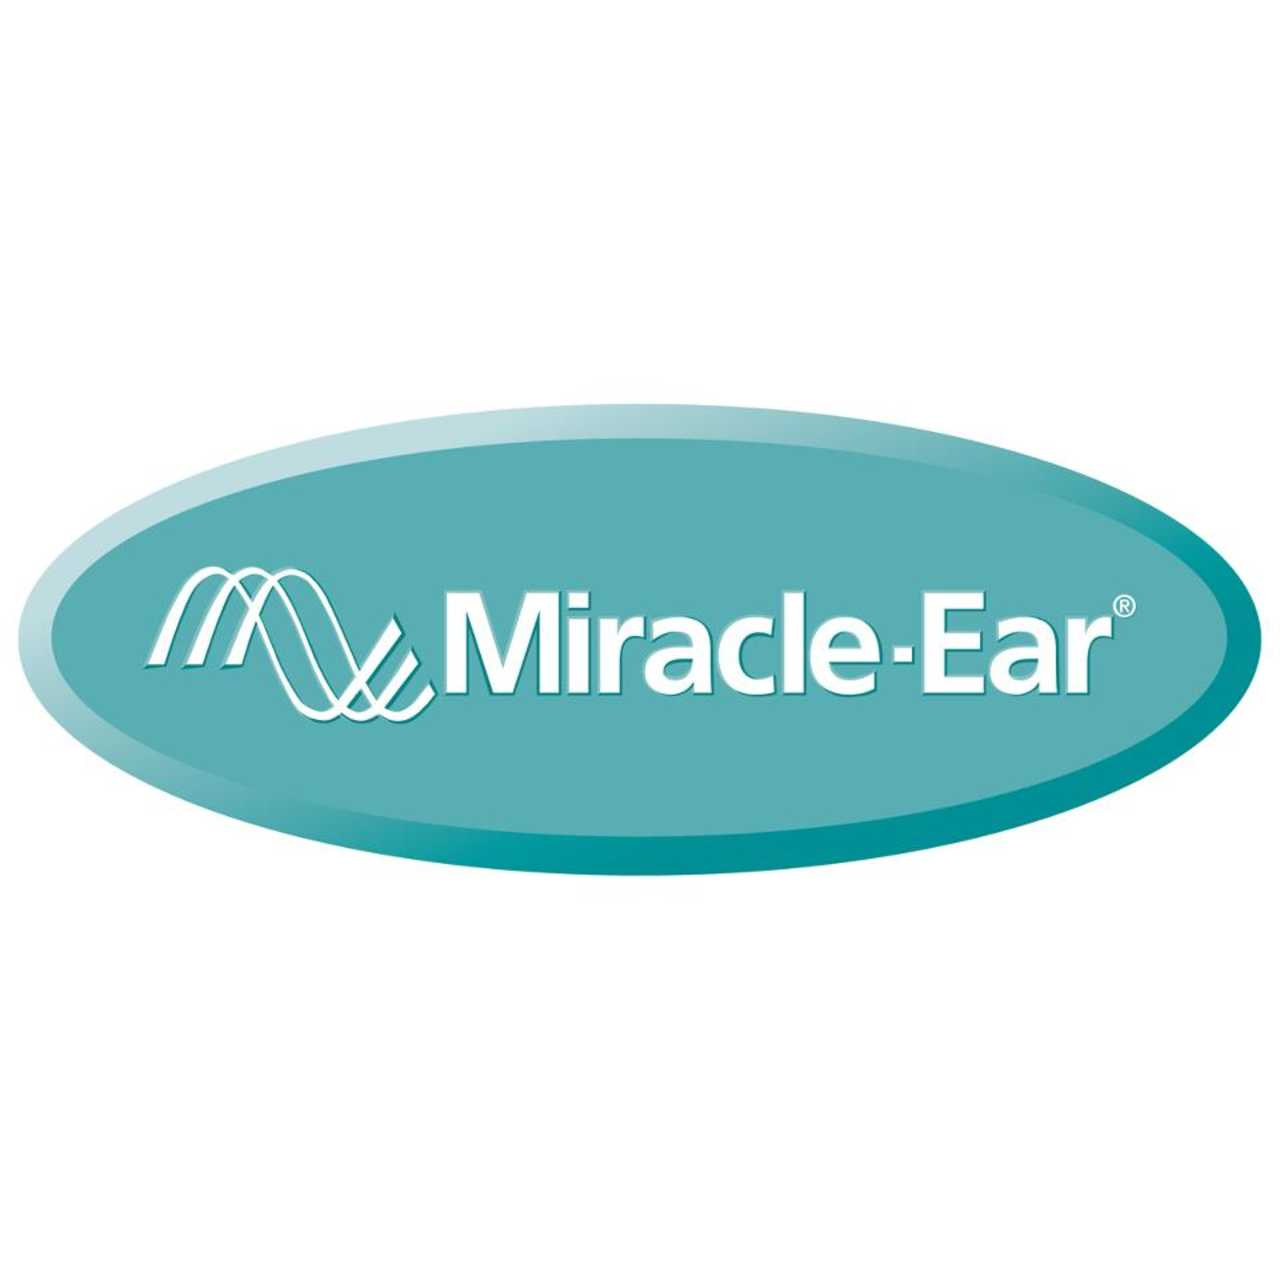 Miracle-Ear - Ft Collins - Medical - Retail Stores in Ft Collins CO